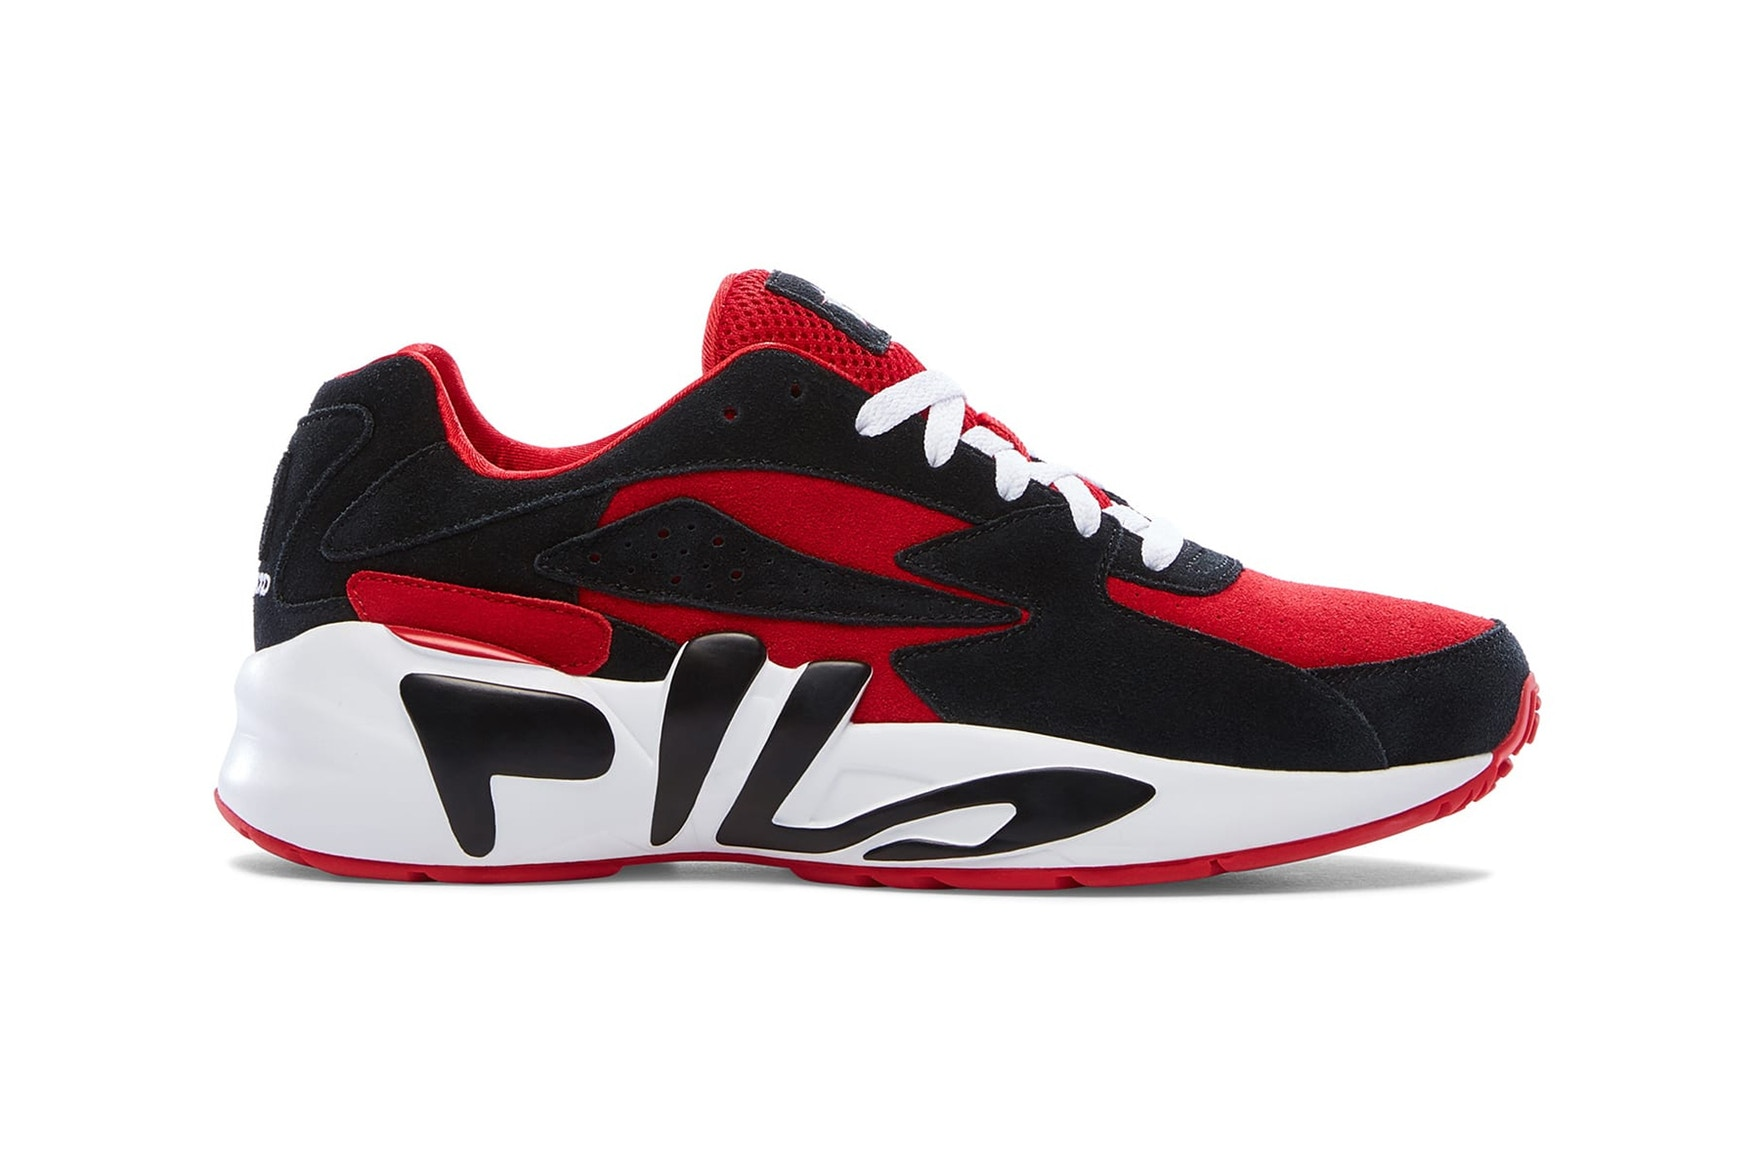 fila-revives-the-classic-mindblower-with-over-40-limited-edition-collaborations-36